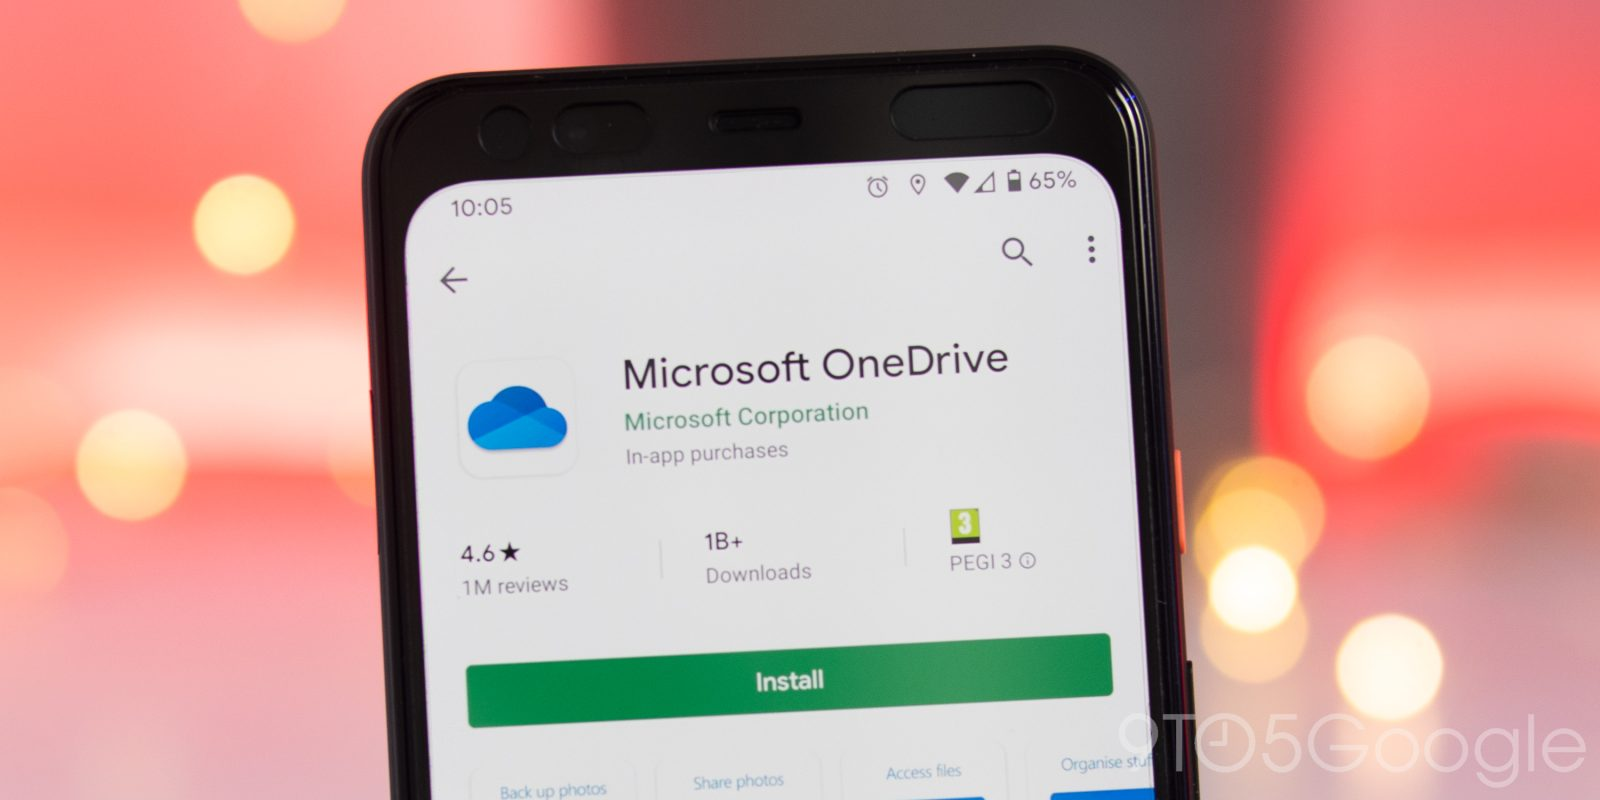 OneDrive for Android gains dark theme in latest beta update - 9to5Google